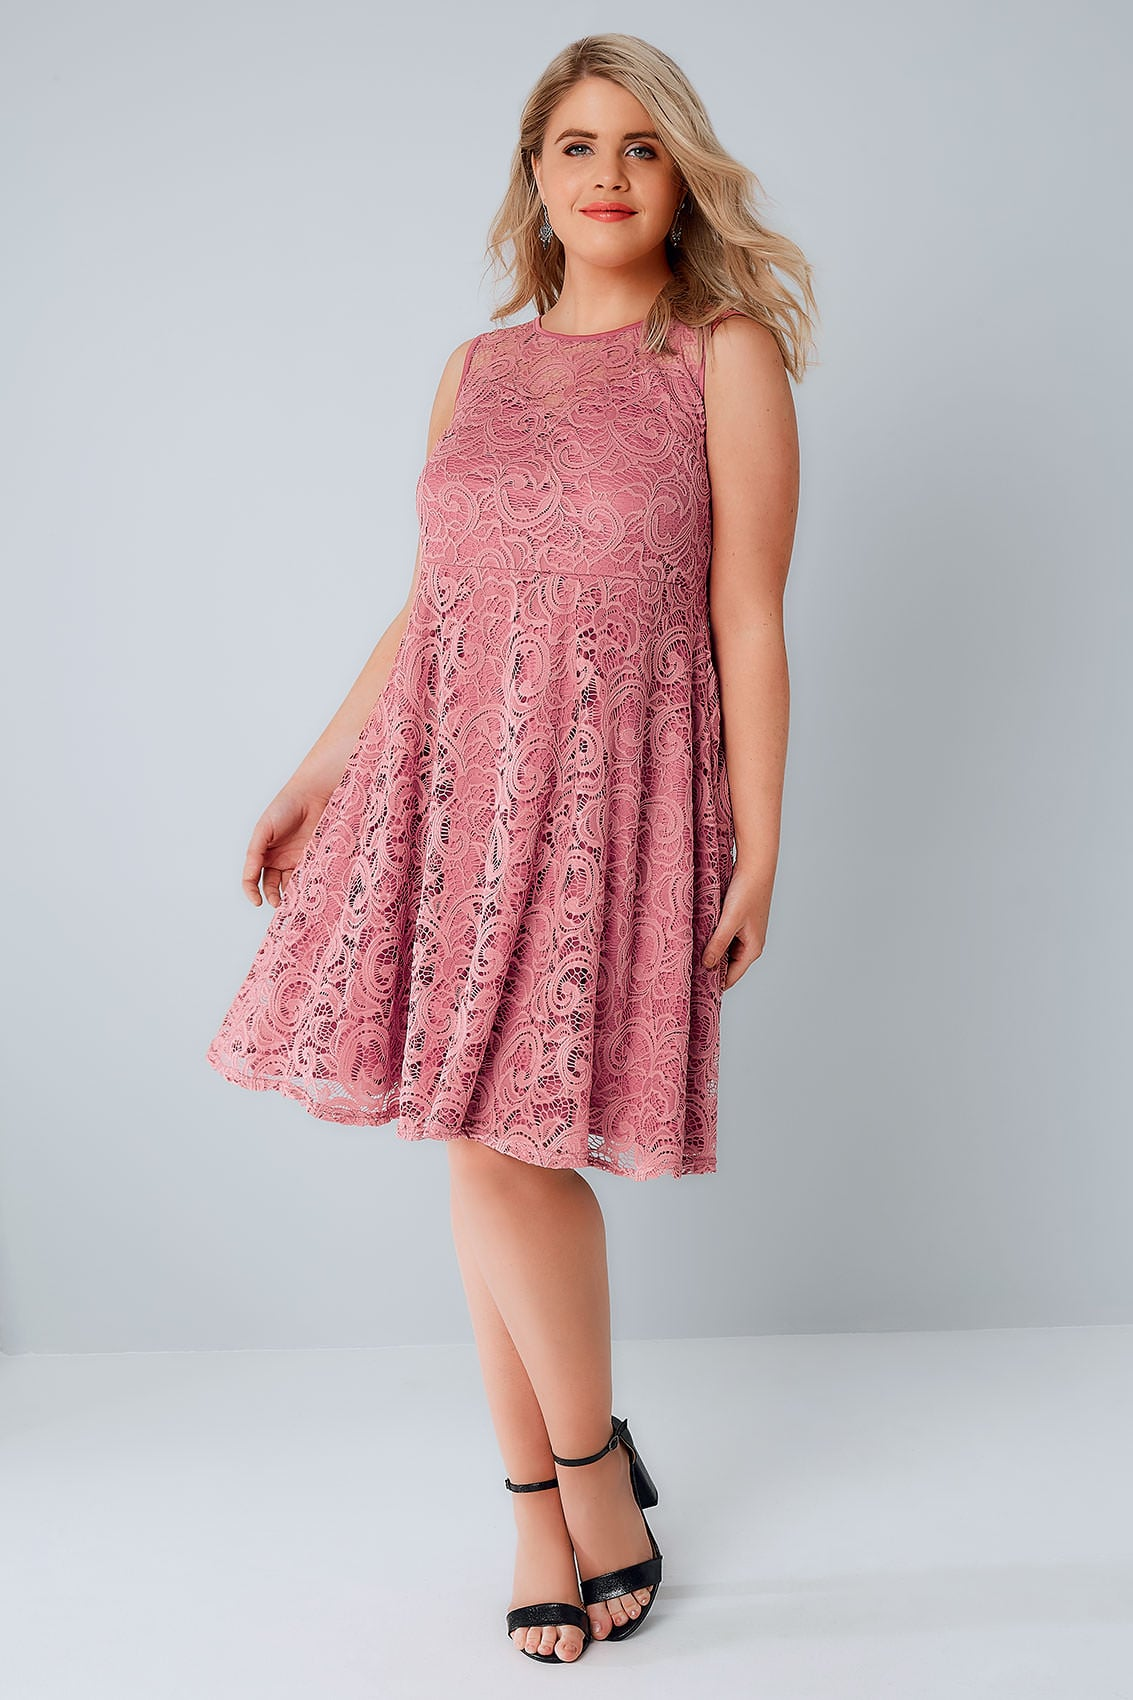 Rose Pink Lace Skater Dress With Sweetheart Neckline plus ...